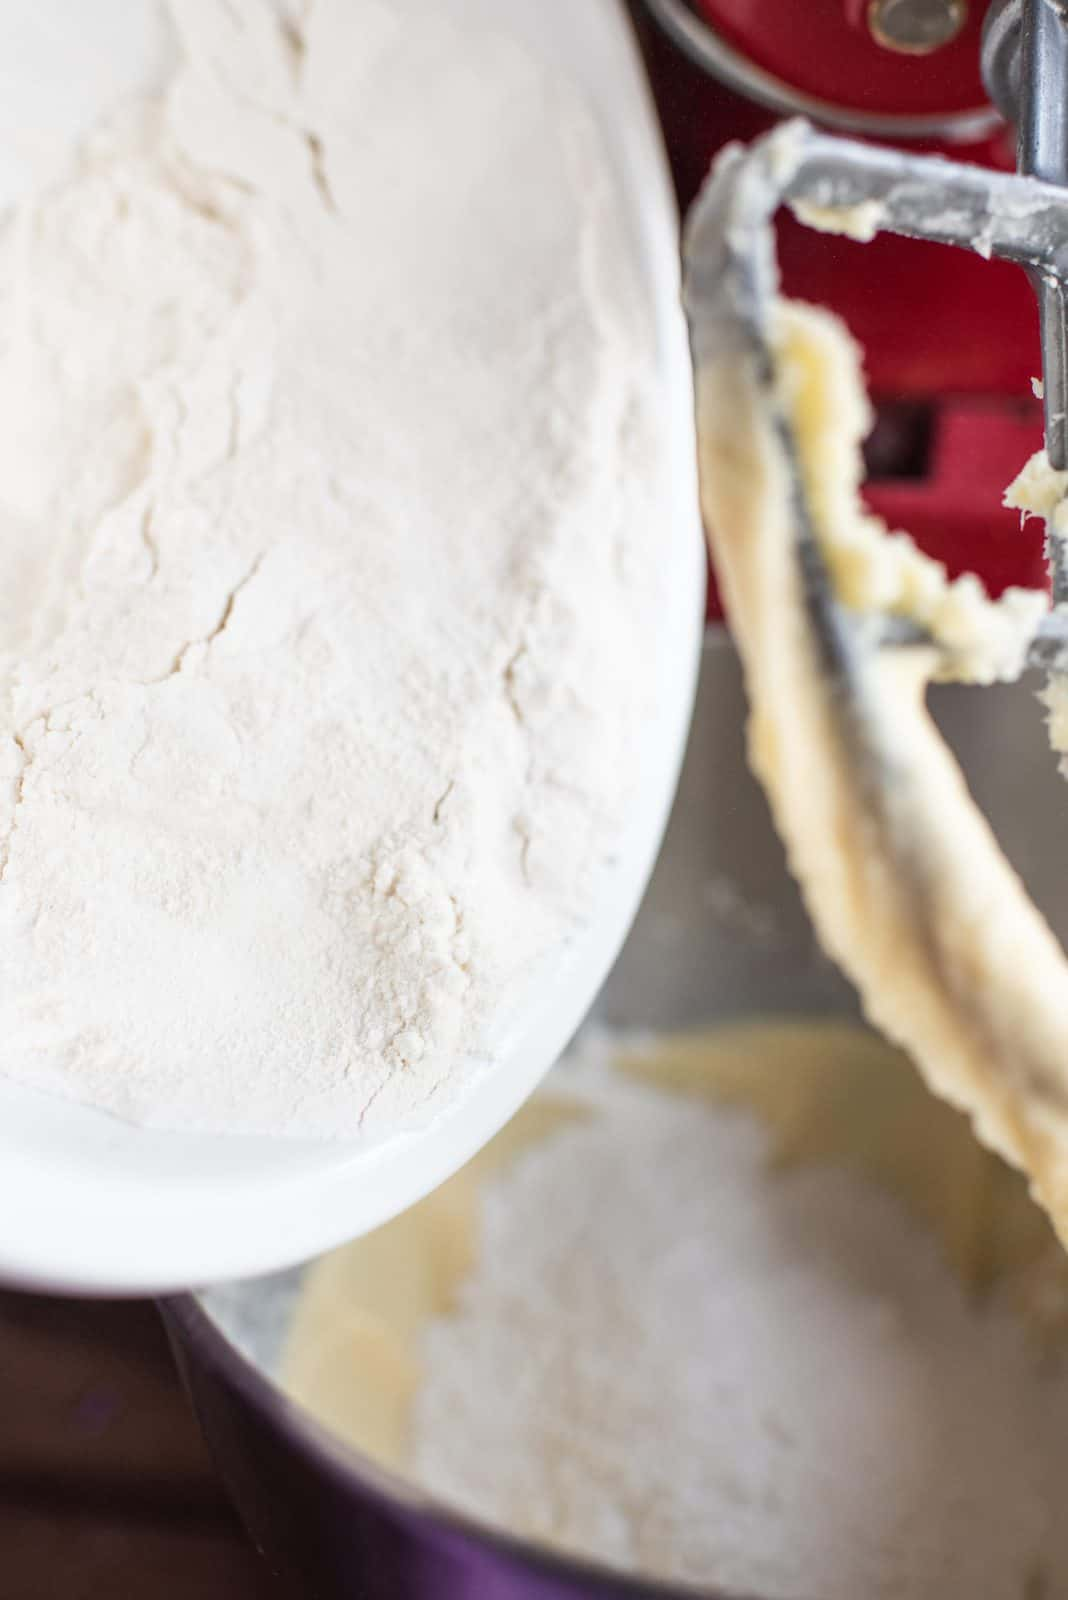 Flour slowly being added to wet mixture.